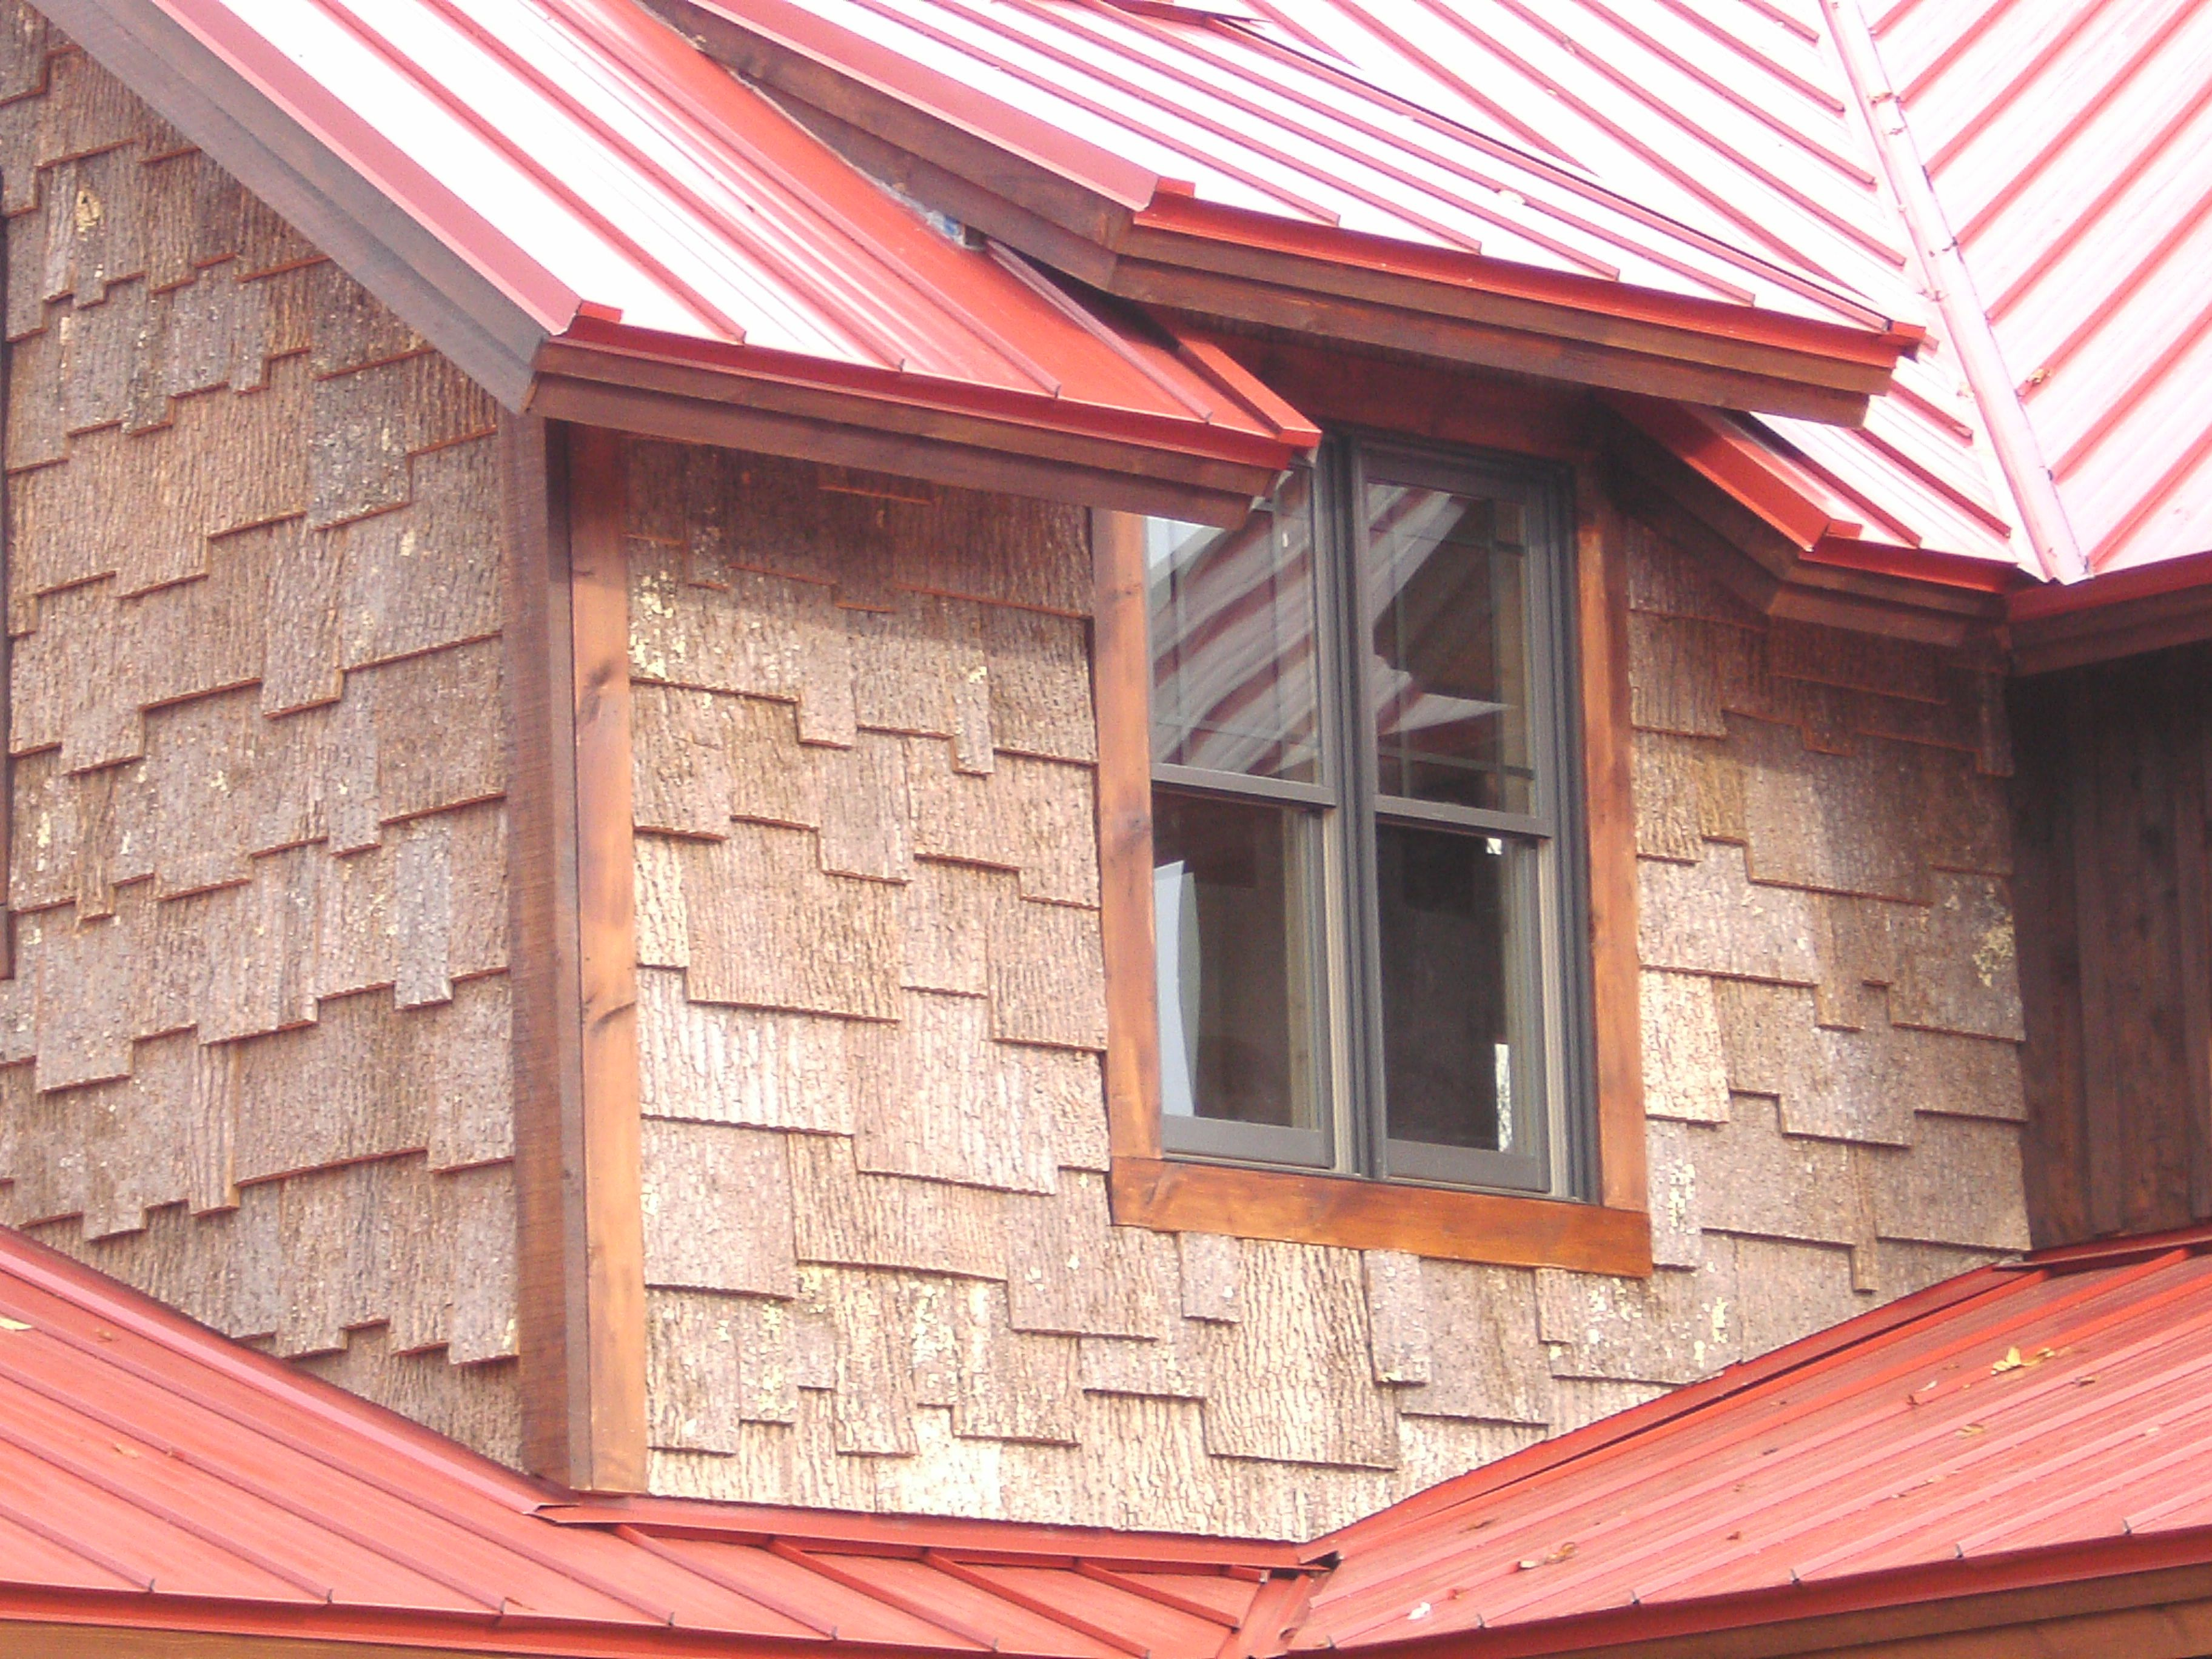 Popular Bark In Gable Also Showing Standing Seam Metal Roof Design By Moss Creek Construction By Gard Metal Roof Houses Flat Roof Design Log Homes Exterior